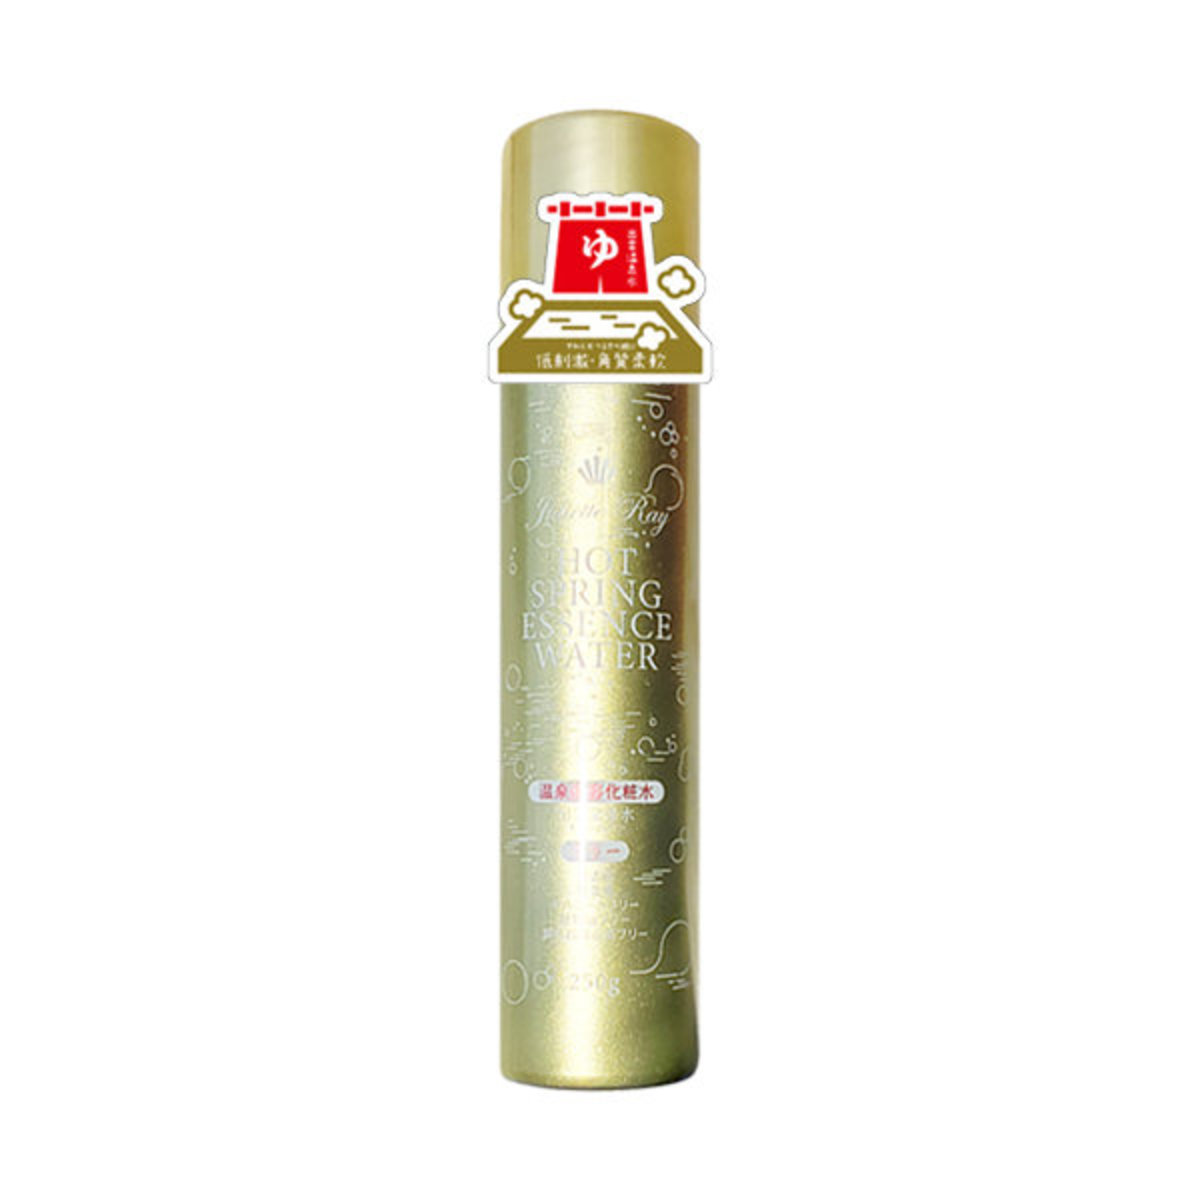 Hot Spring Essence Water 250g【Parallel Imports 】